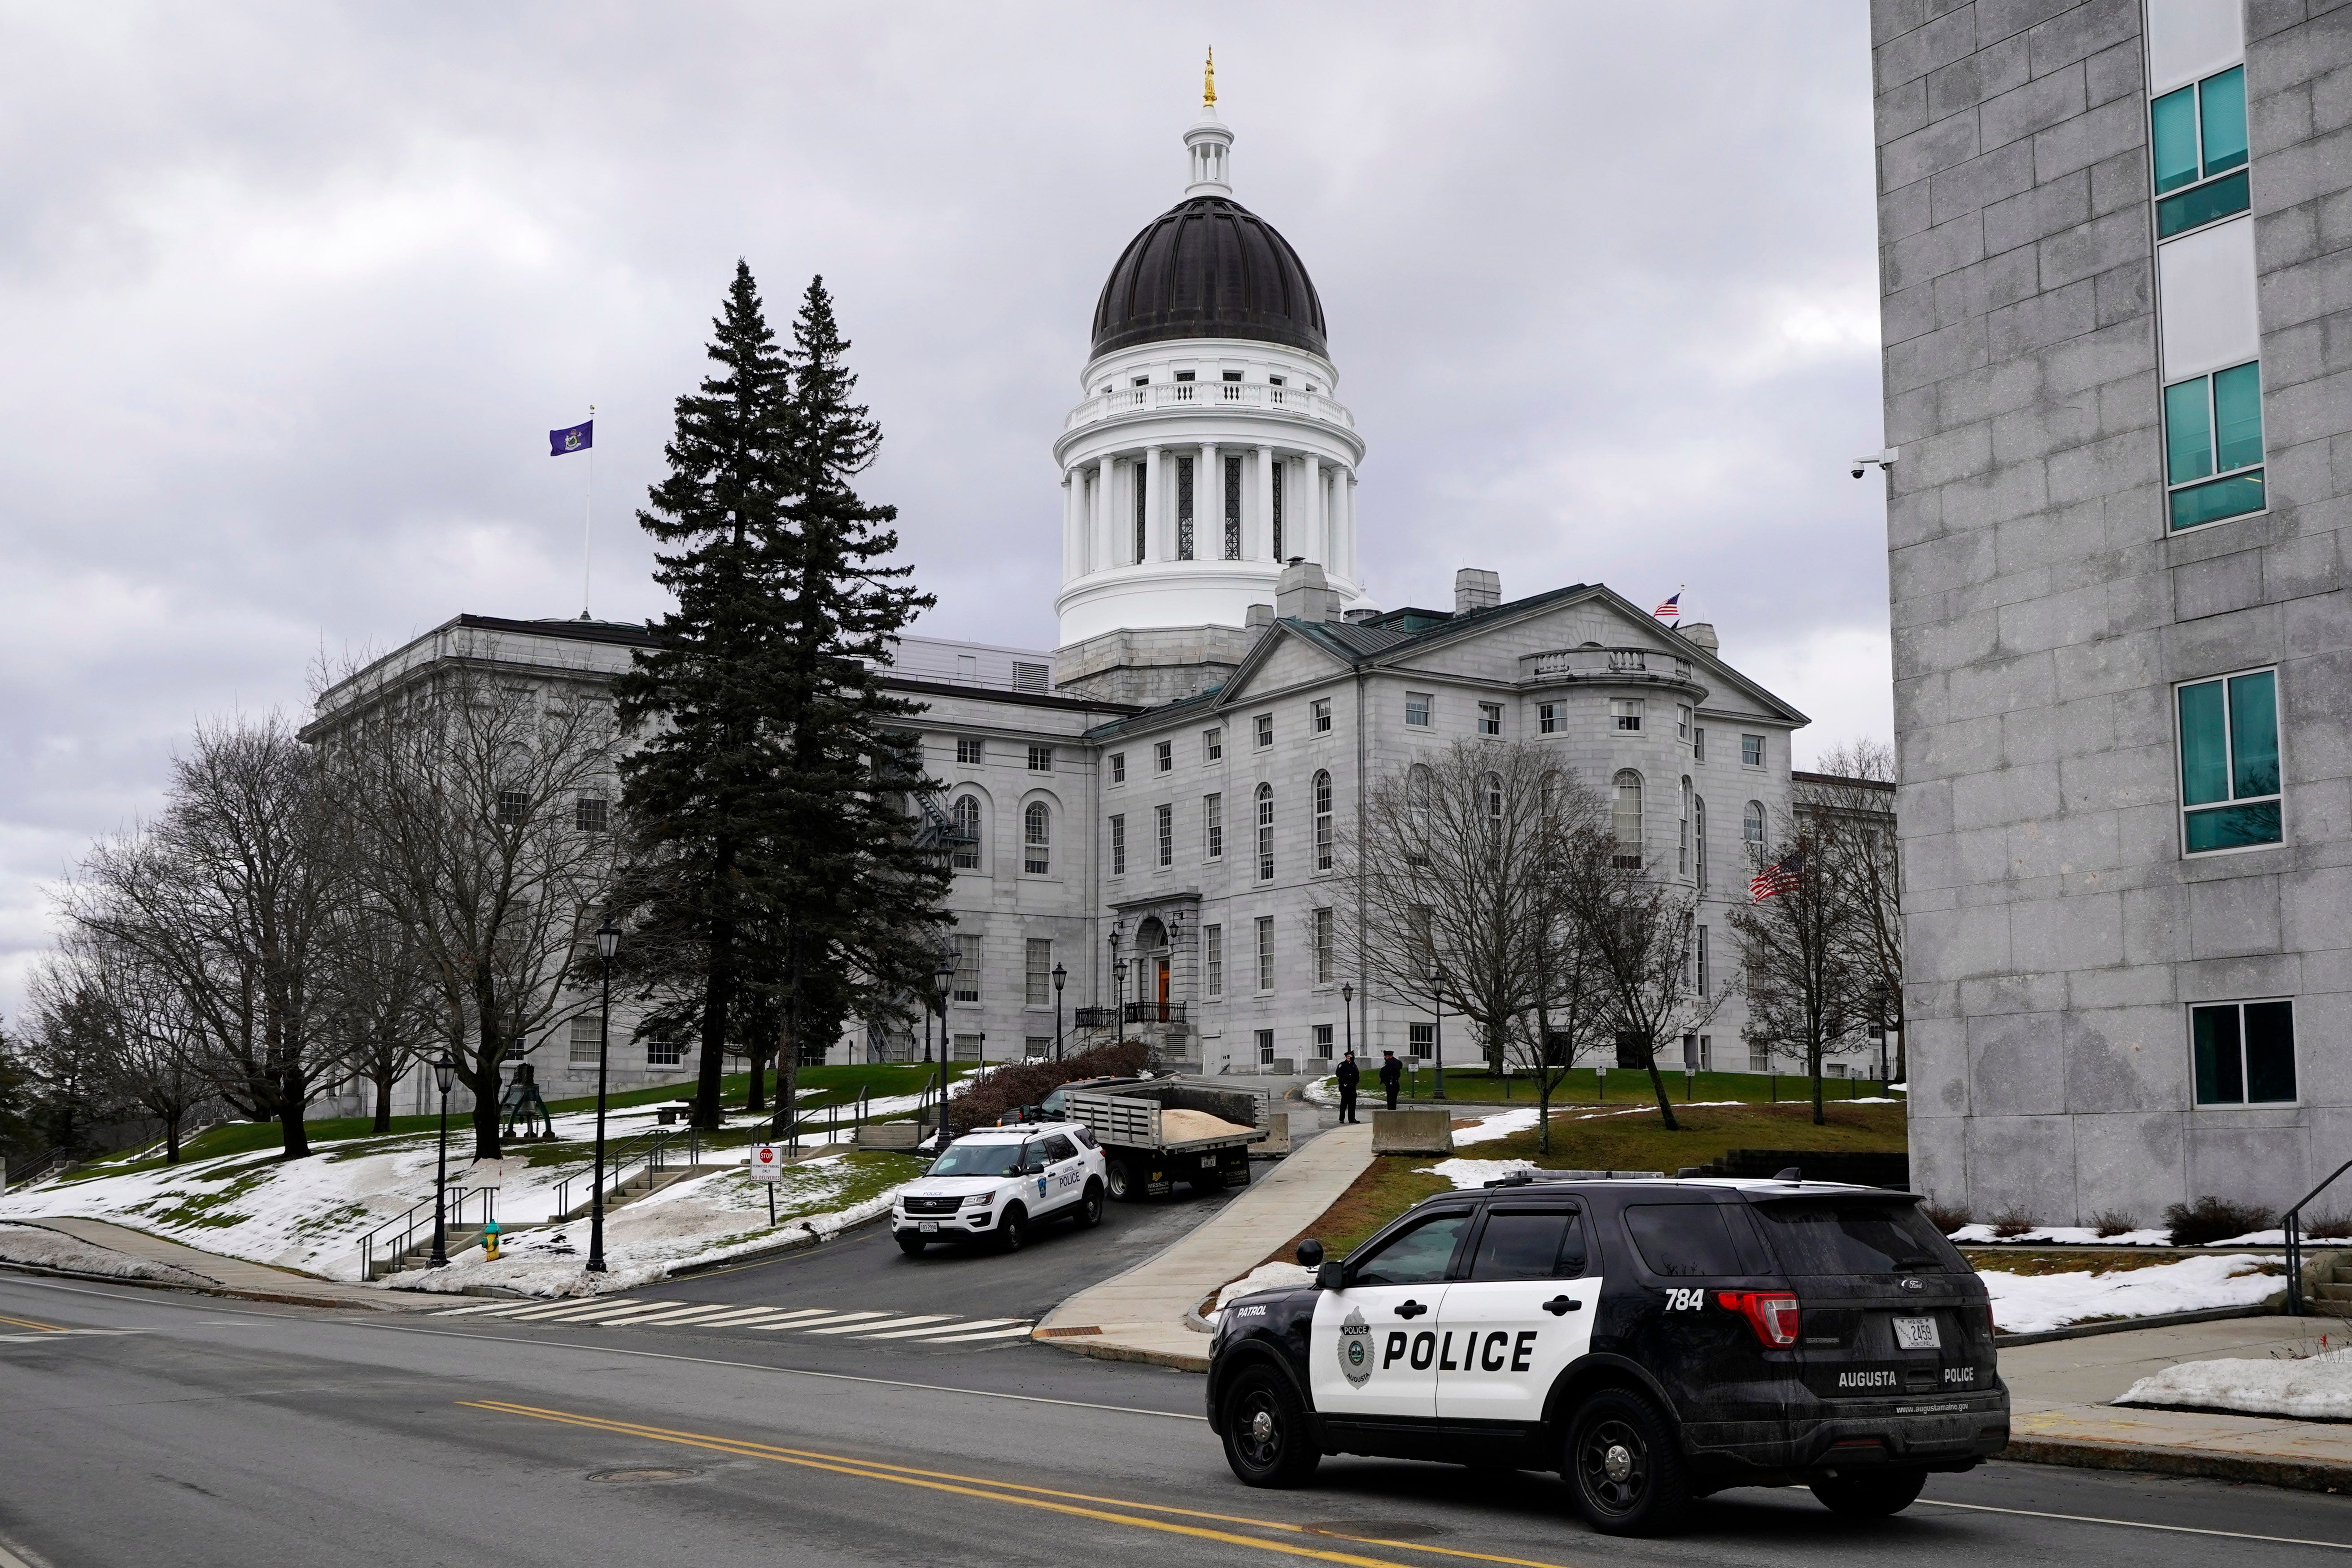 Capitol Police and Augusta Police patrol the Statehouse grounds, Sunday, Jan. 17, 2021, in Augusta, Maine. Law enforcement is taking precautions for possible demonstrations in the wake of the recent breach of the U.S. Capitol.